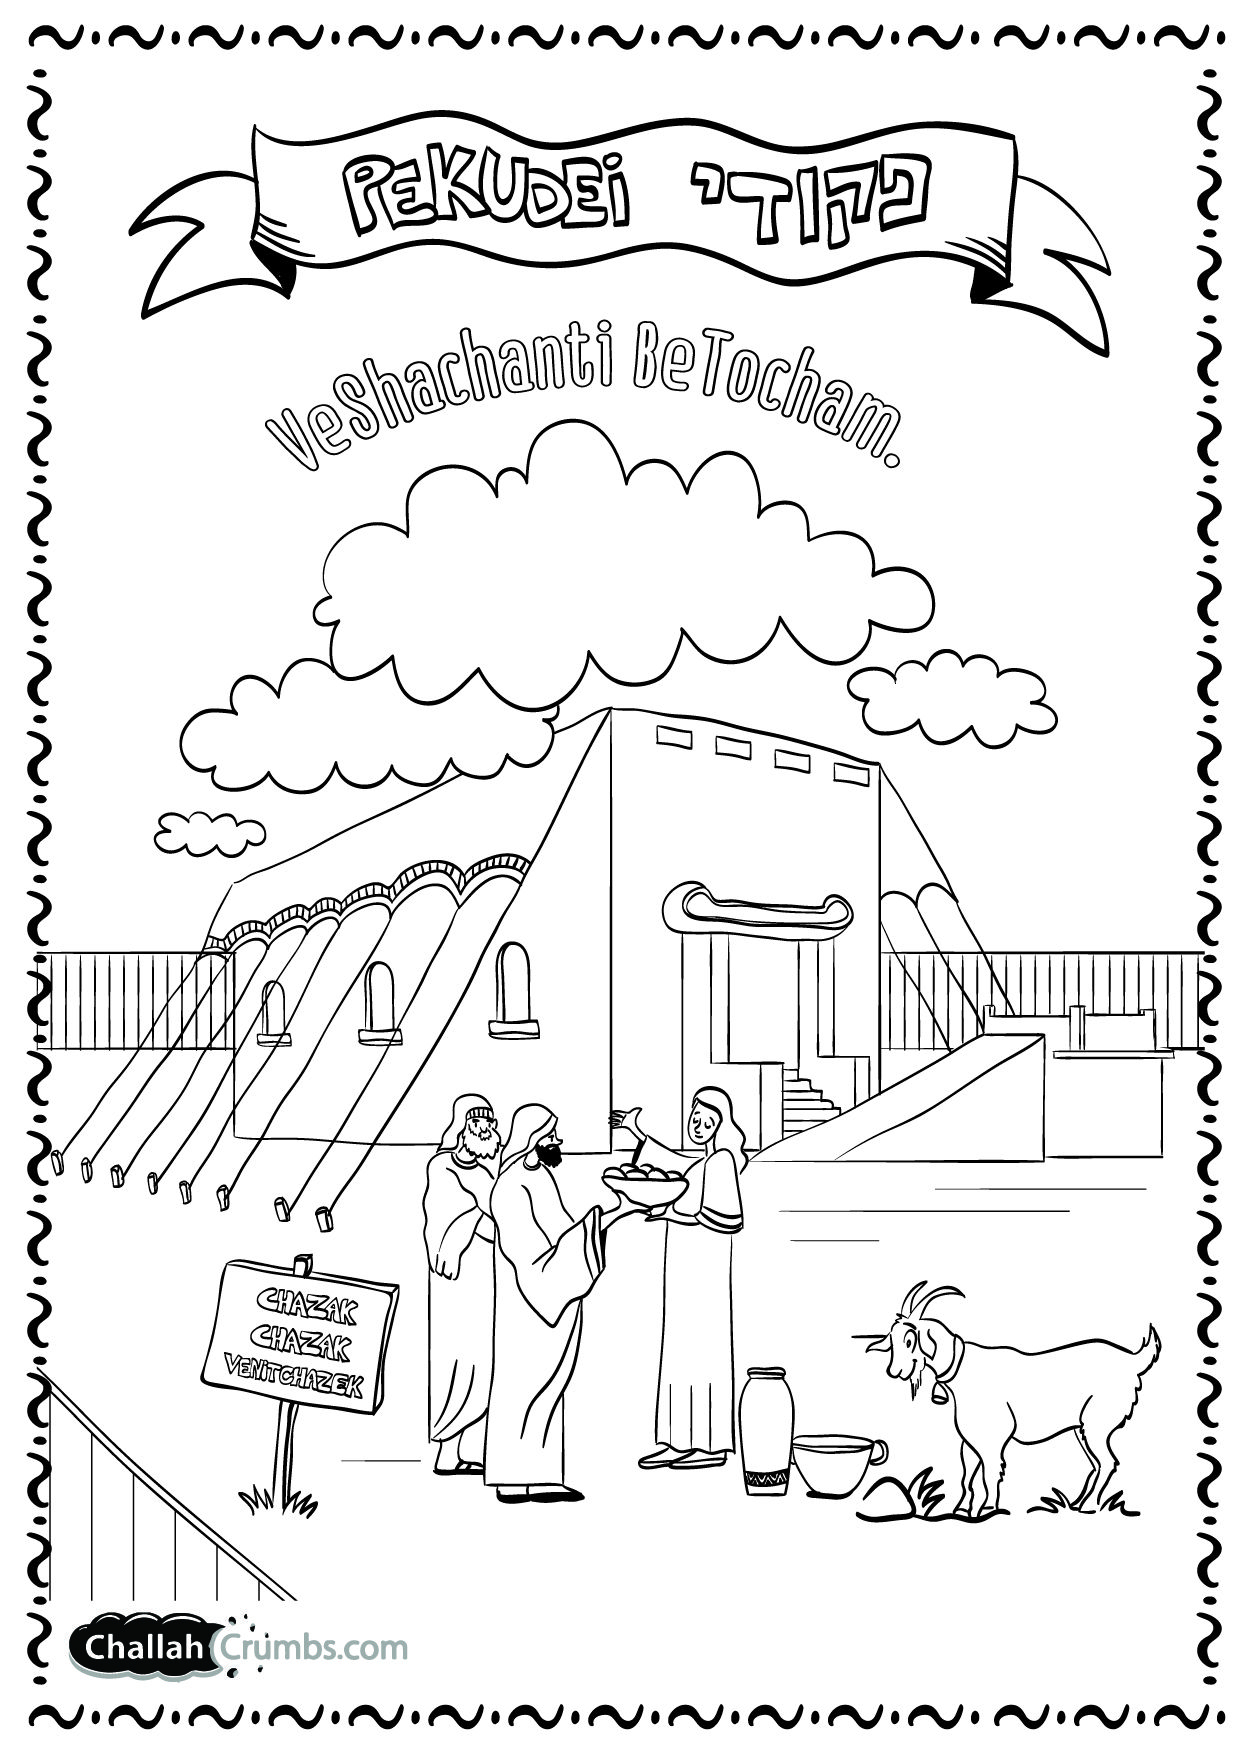 Tabernacle Coloring Pages Free - Funnyhub - Free Printable Pictures Of The Tabernacle